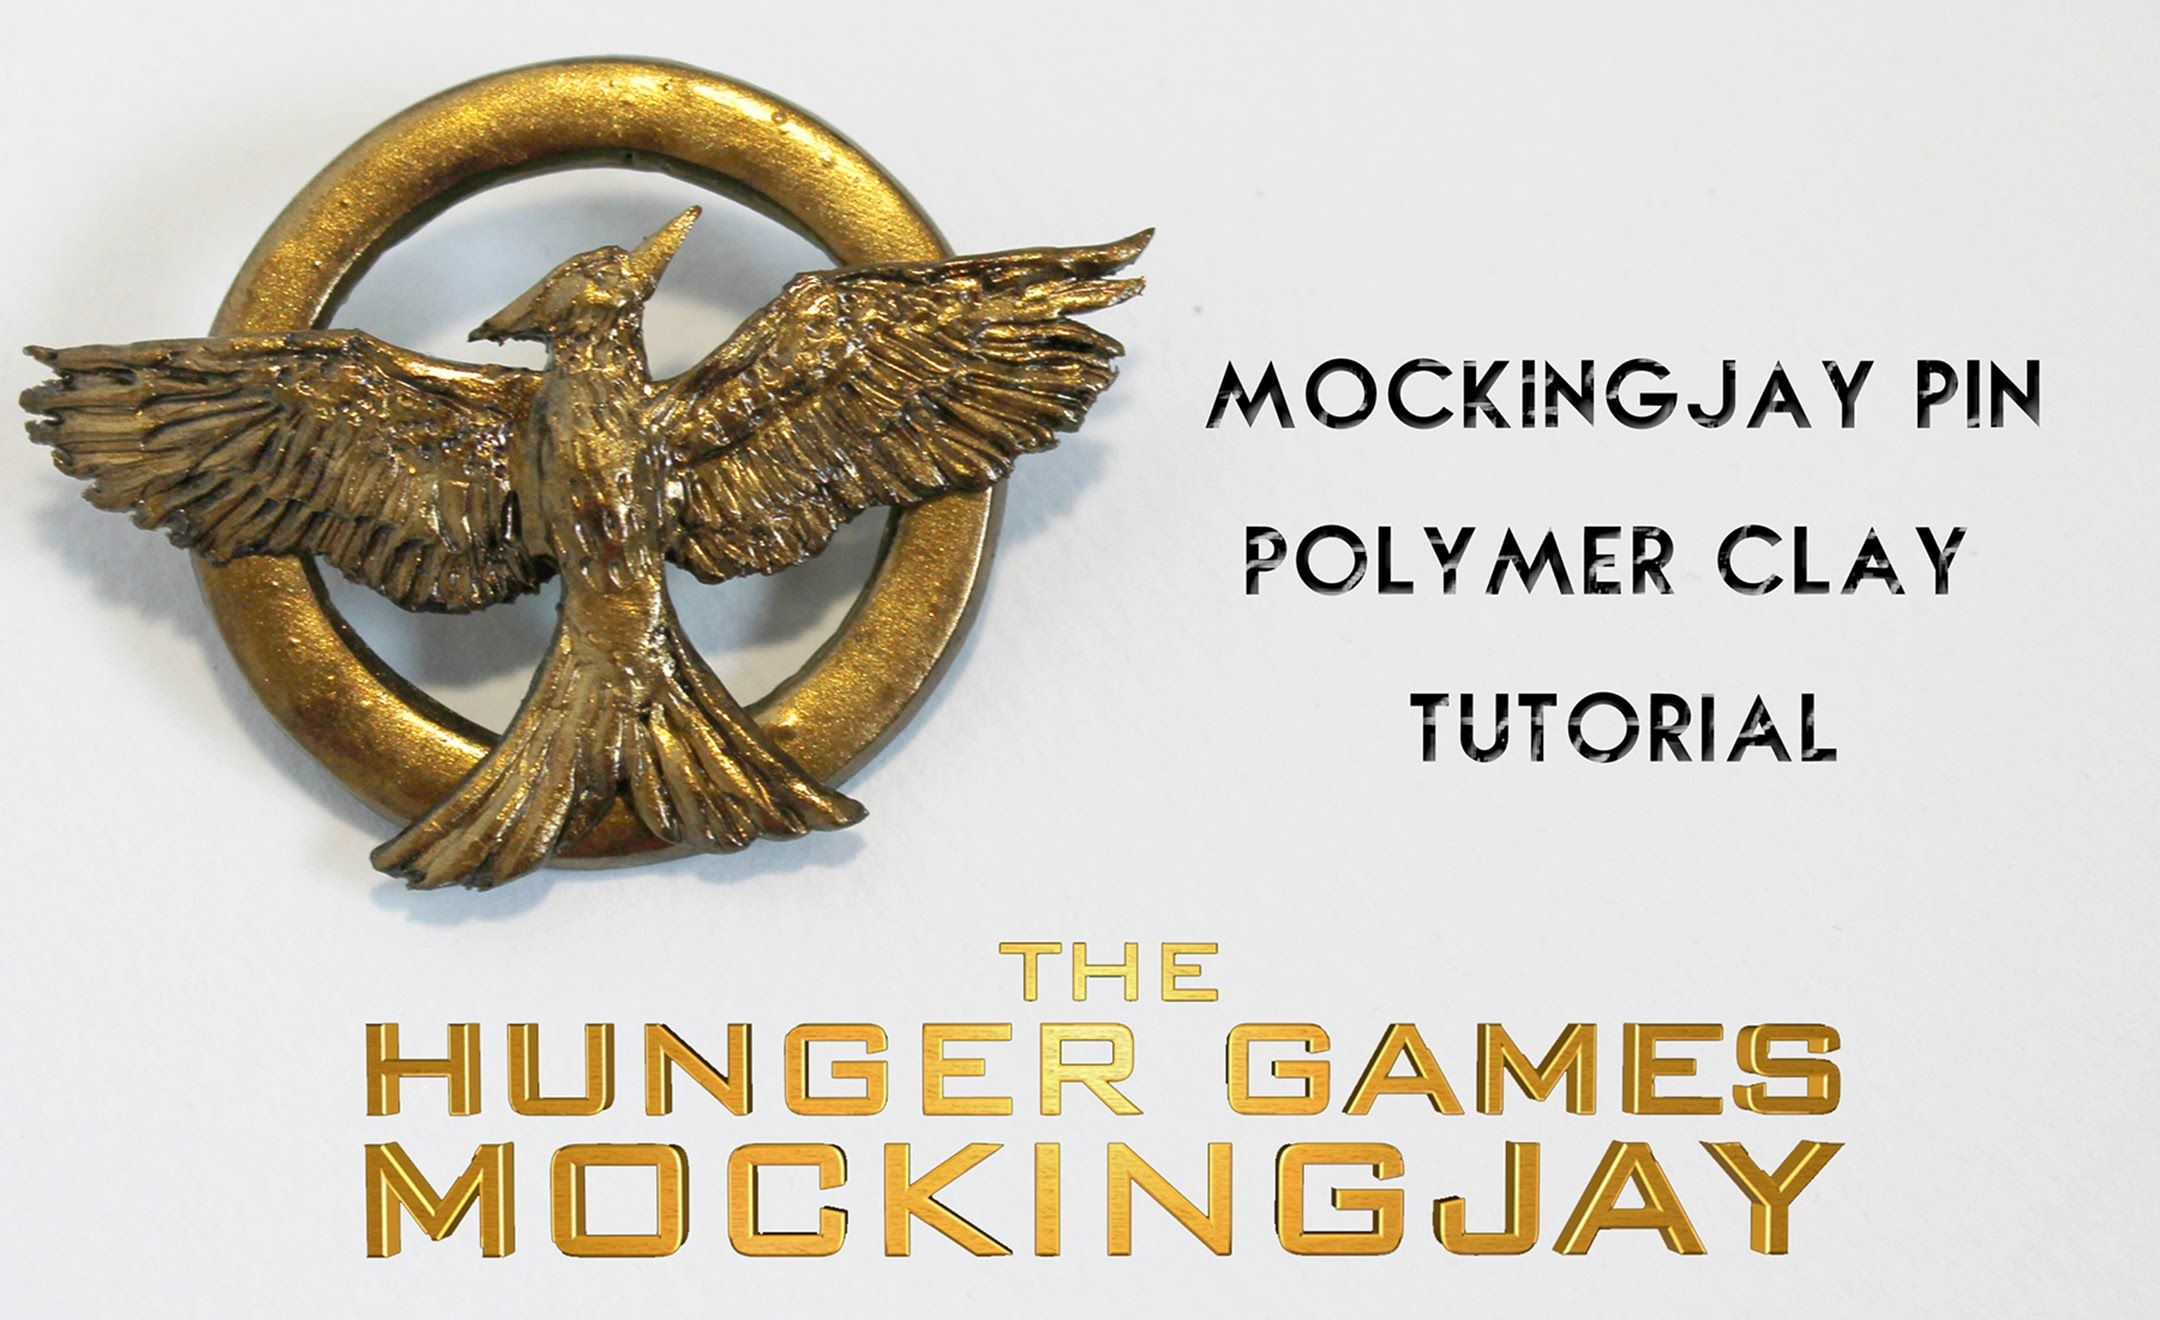 Watch How to Make a Mockingjay Pin video